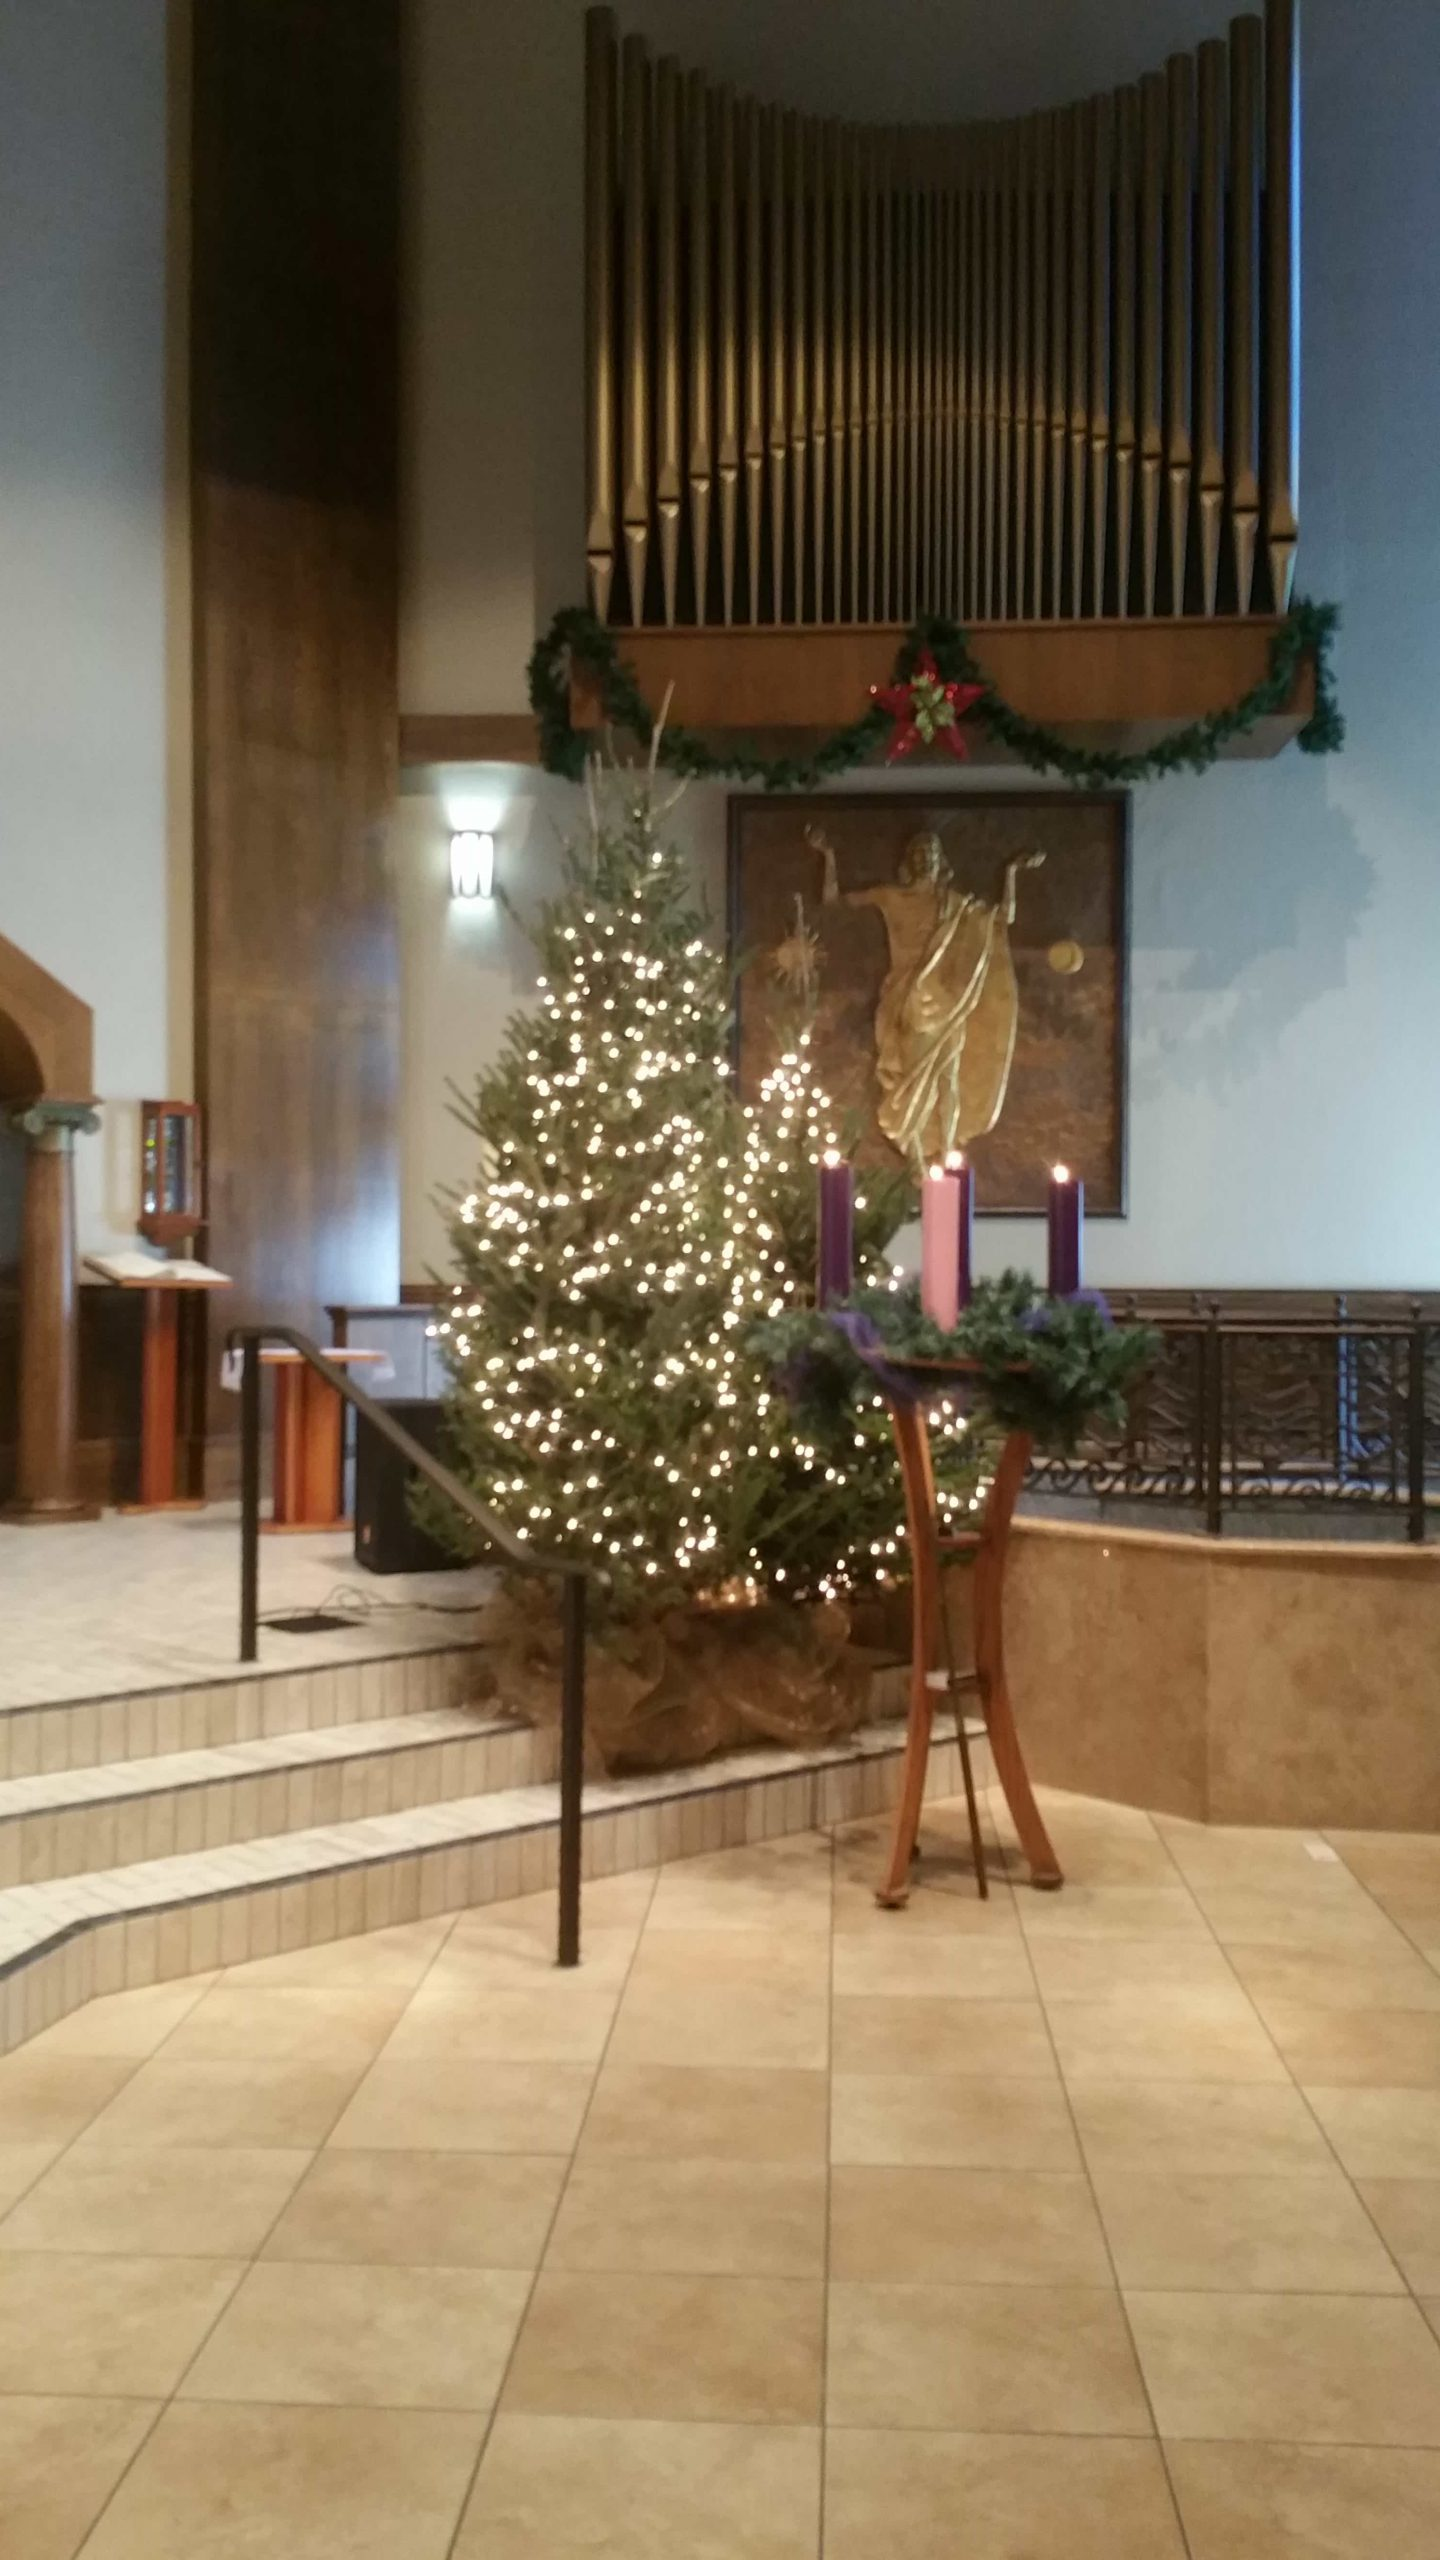 Blessed Trinity Christmas Decorations 2017 - 3